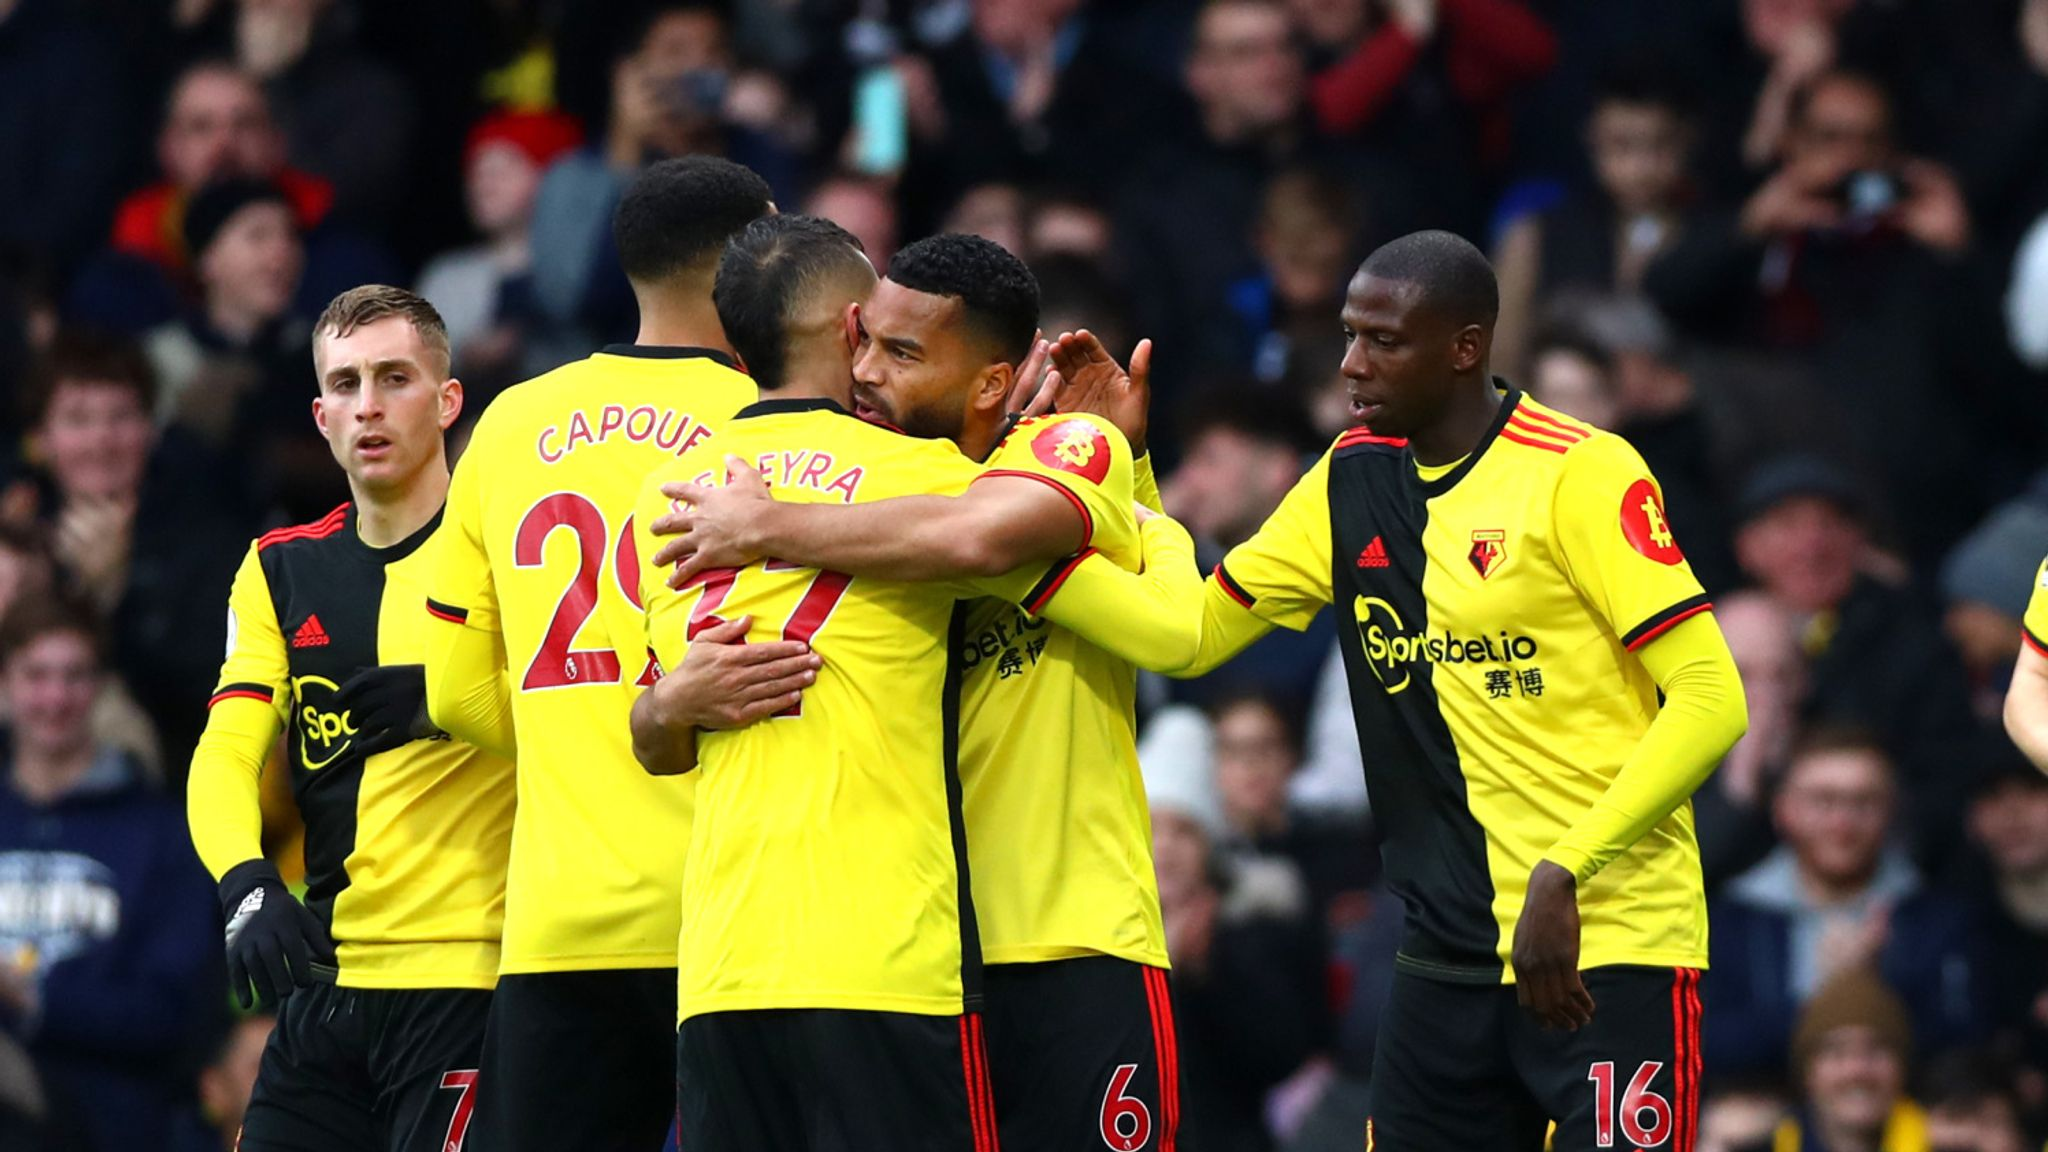 soi-keo-watford-vs-leicester-city-luc-18h30-ngay-20-6-2020-1